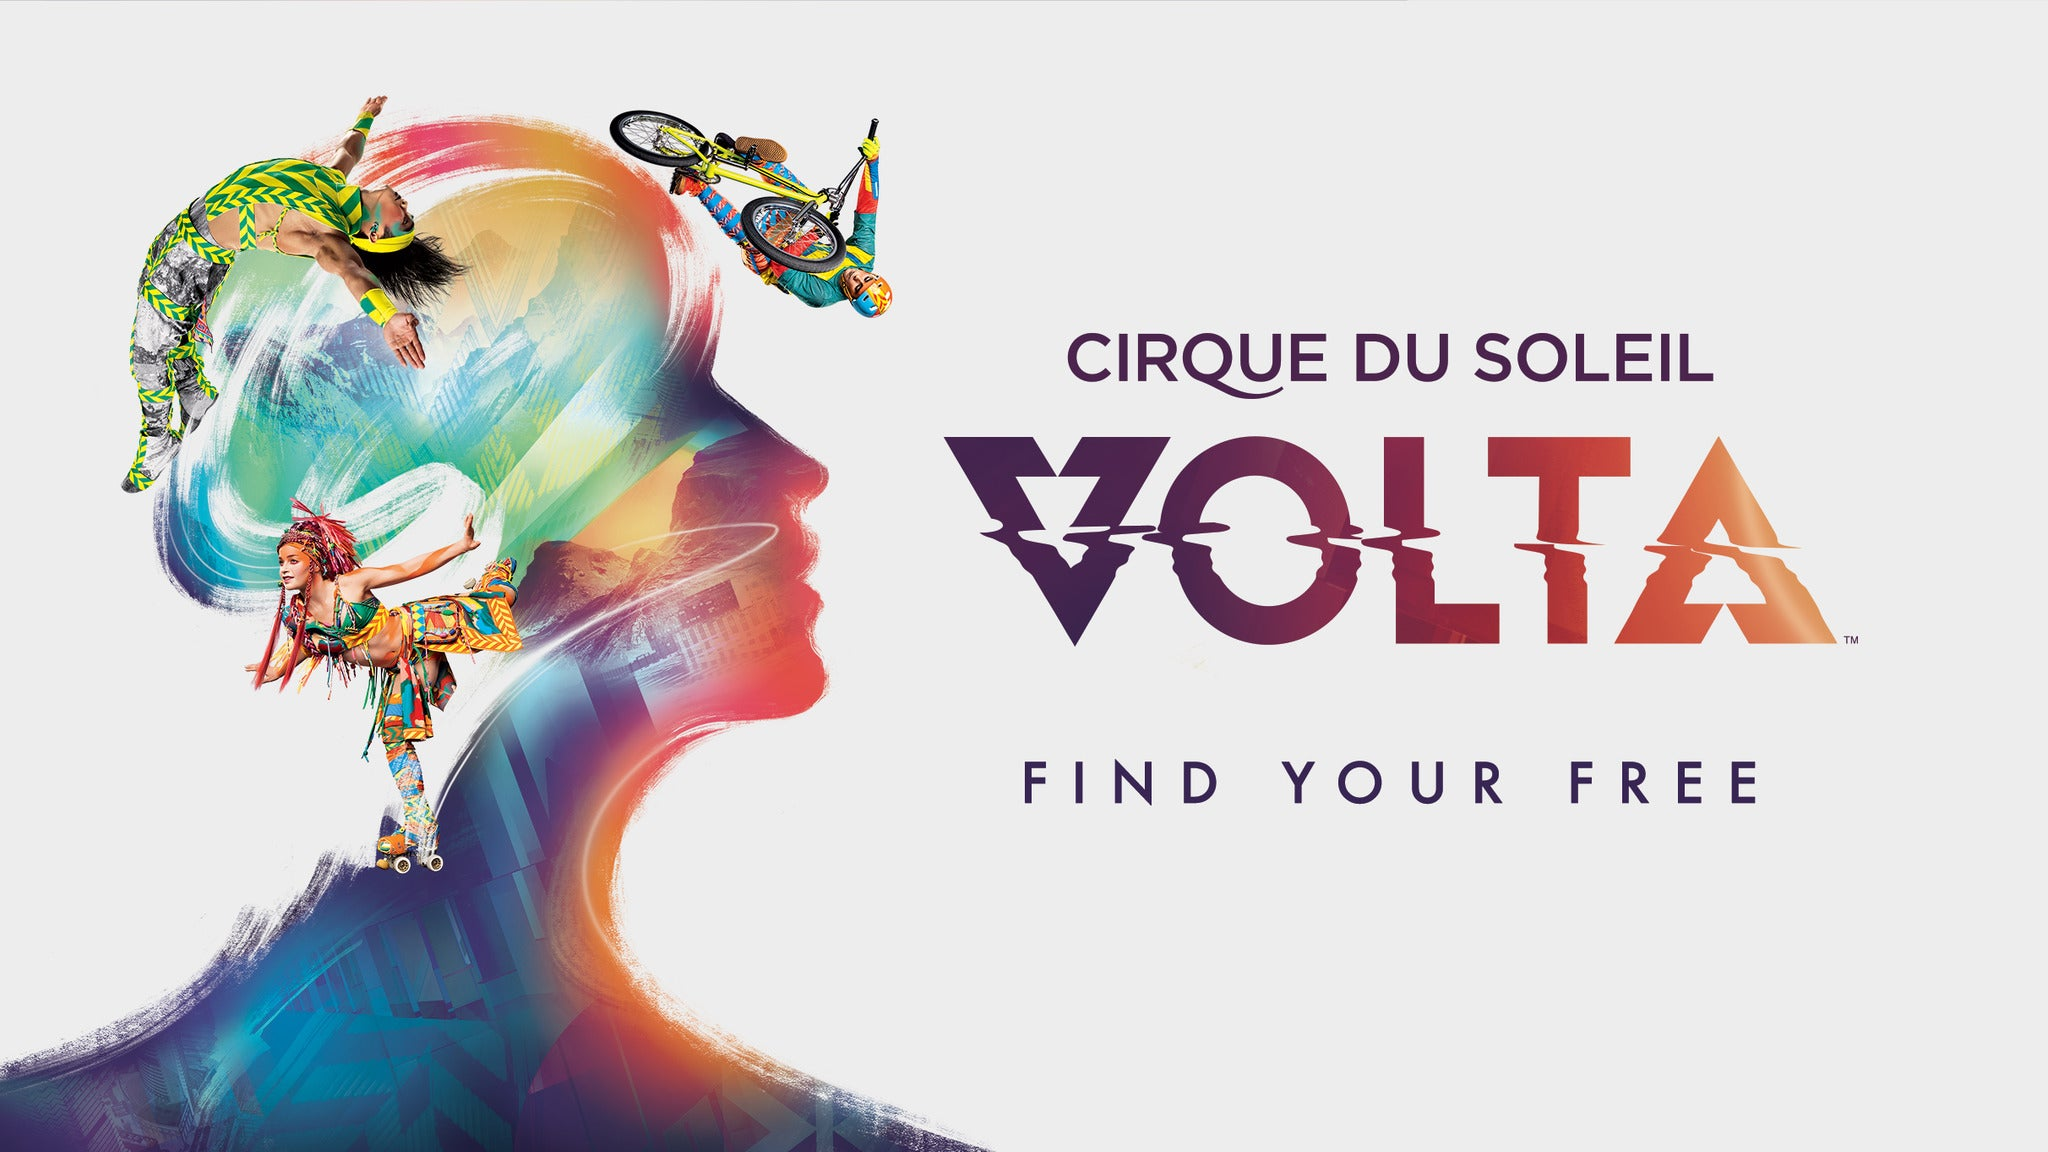 Cirque du Soleil VOLTA - Under the Big Top